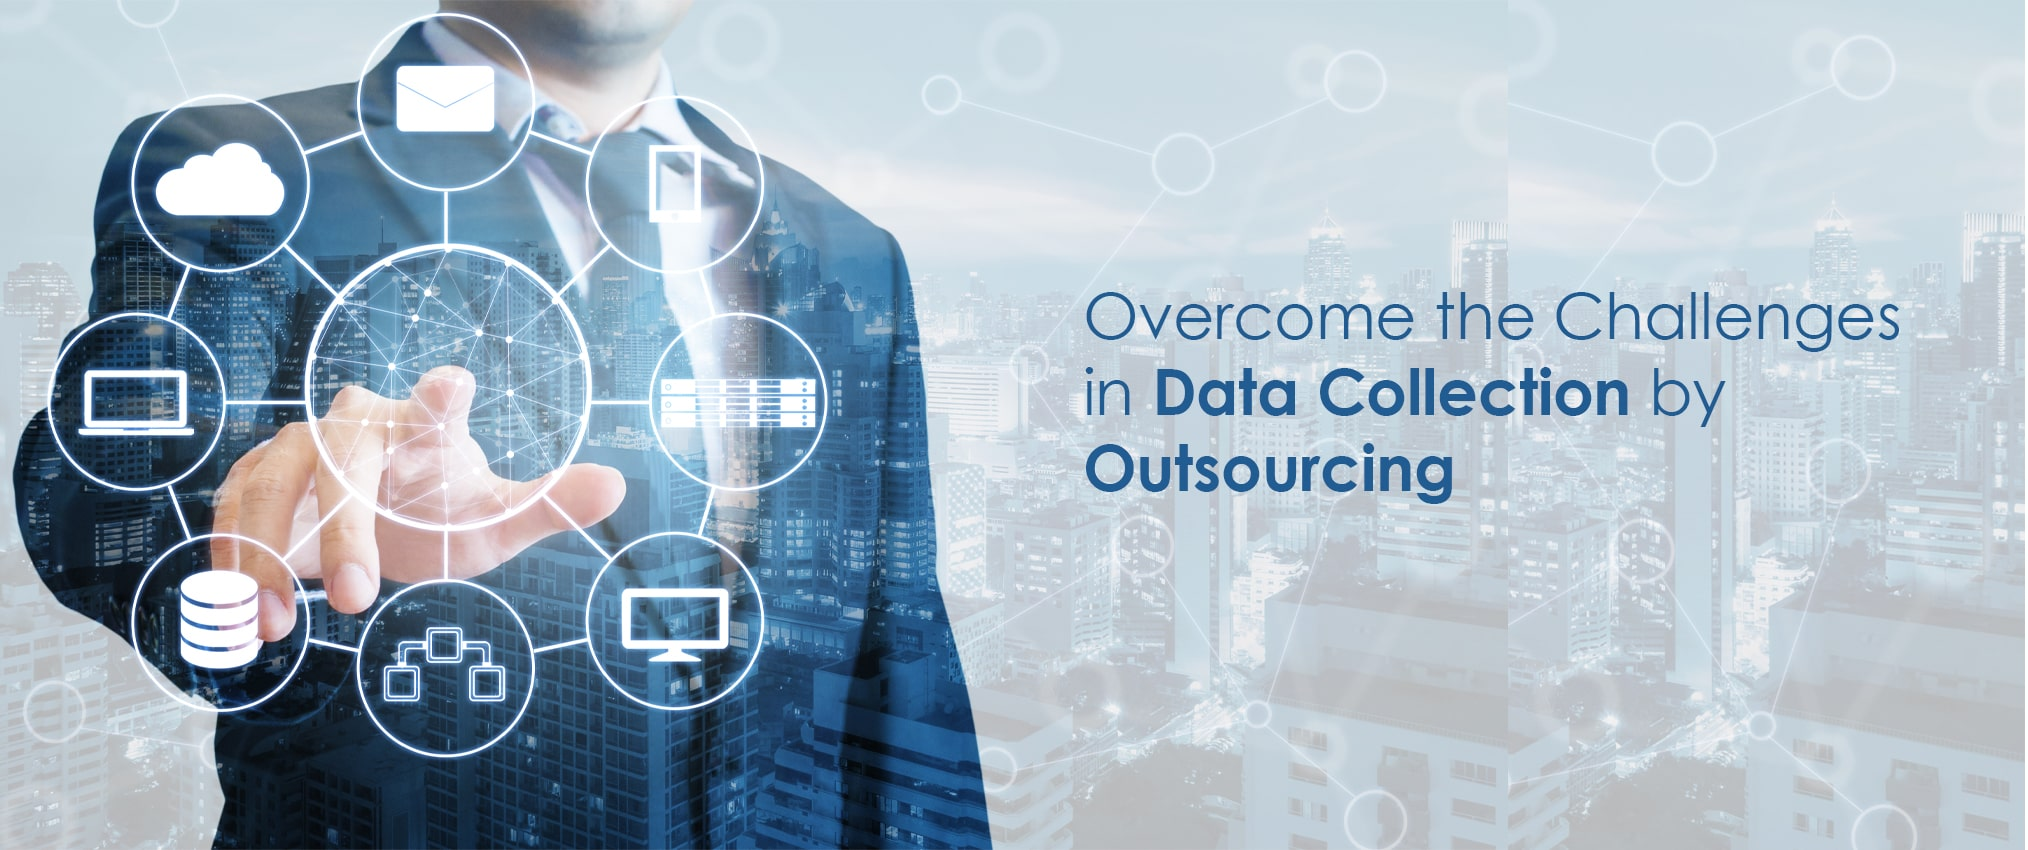 data collection outsourcing